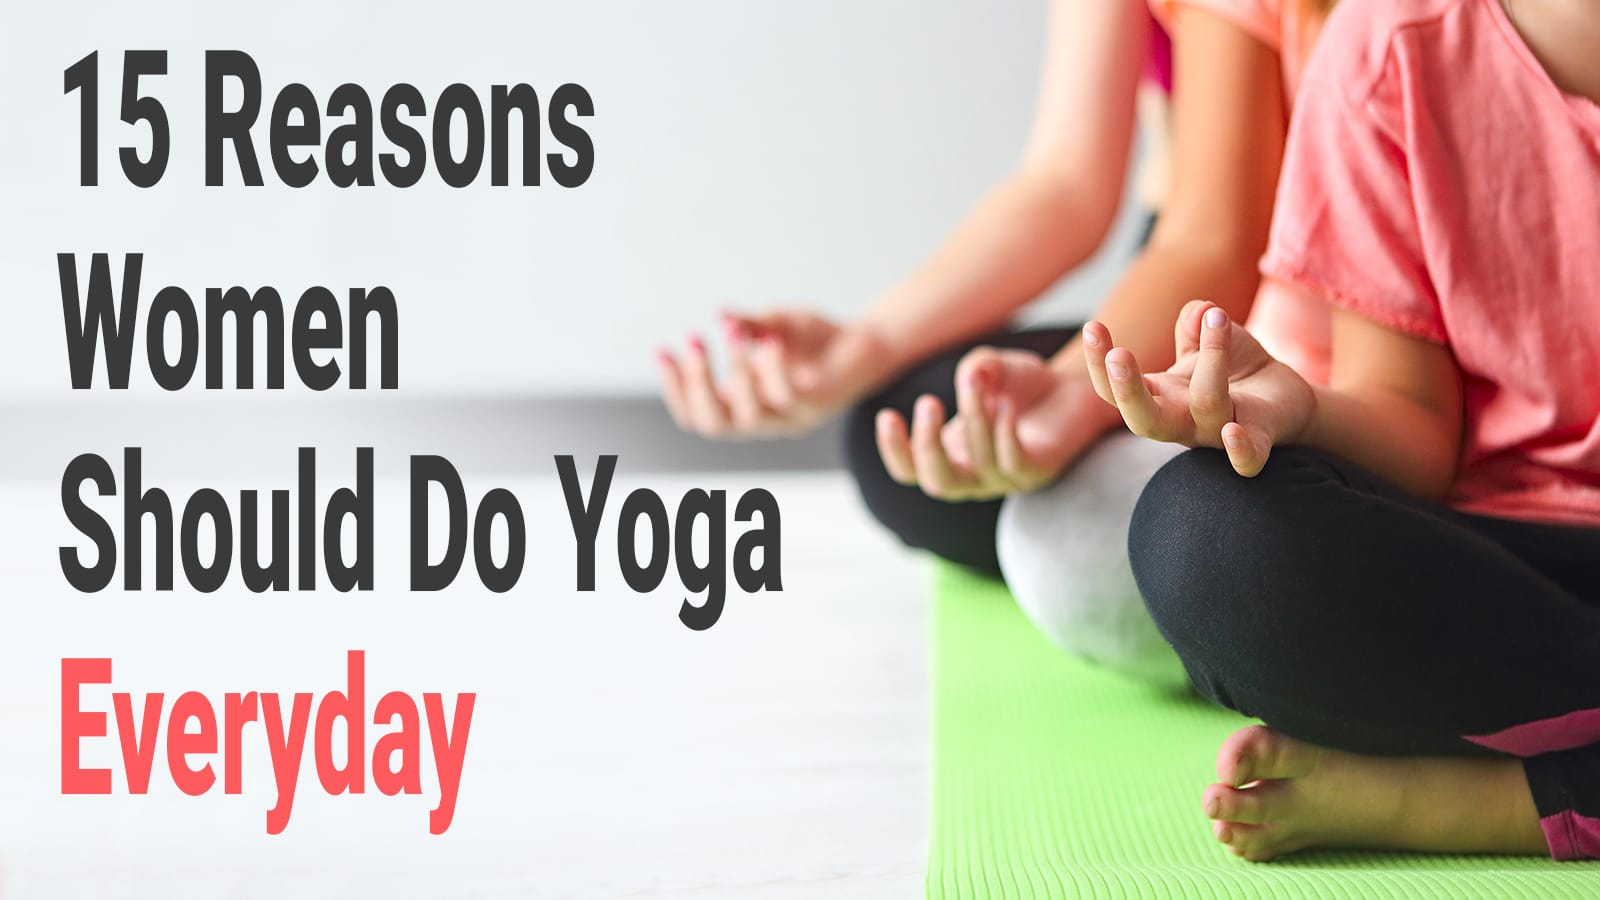 15 Reasons Women Should Do Yoga Everyday